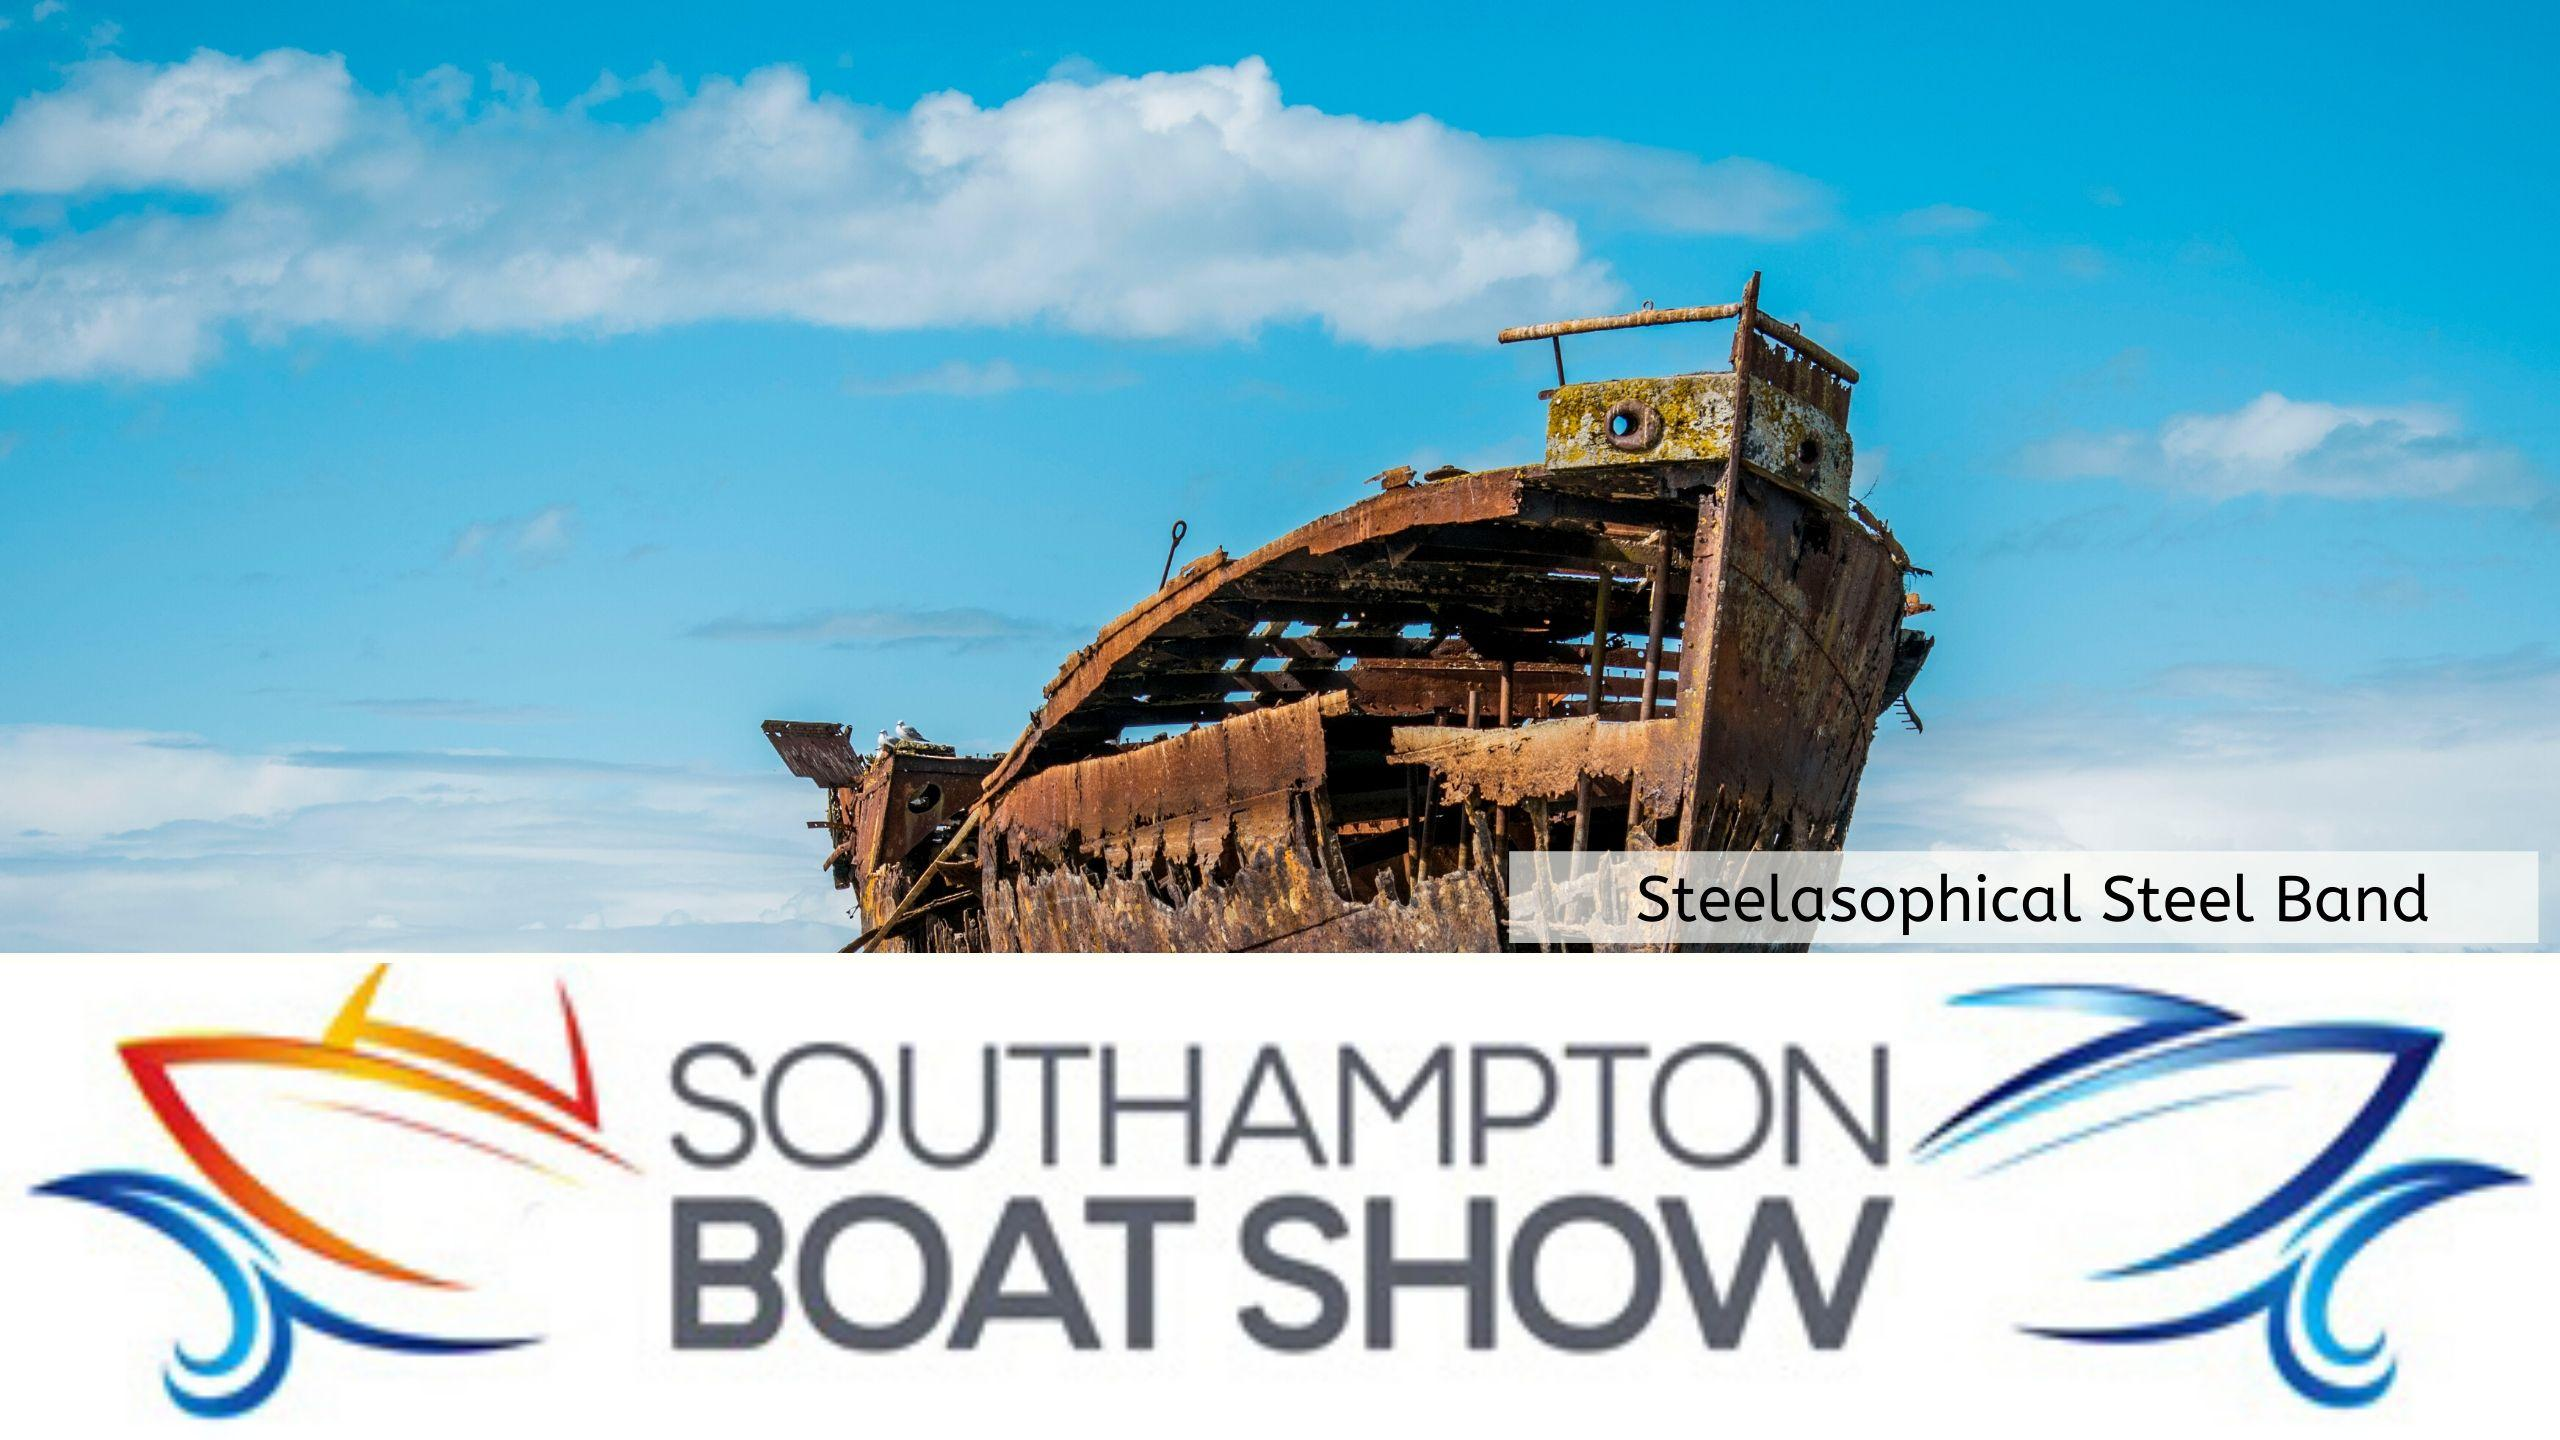 Steelasophical Steel Band Southampton Boat Show Yacht Market Entertainment 00vve